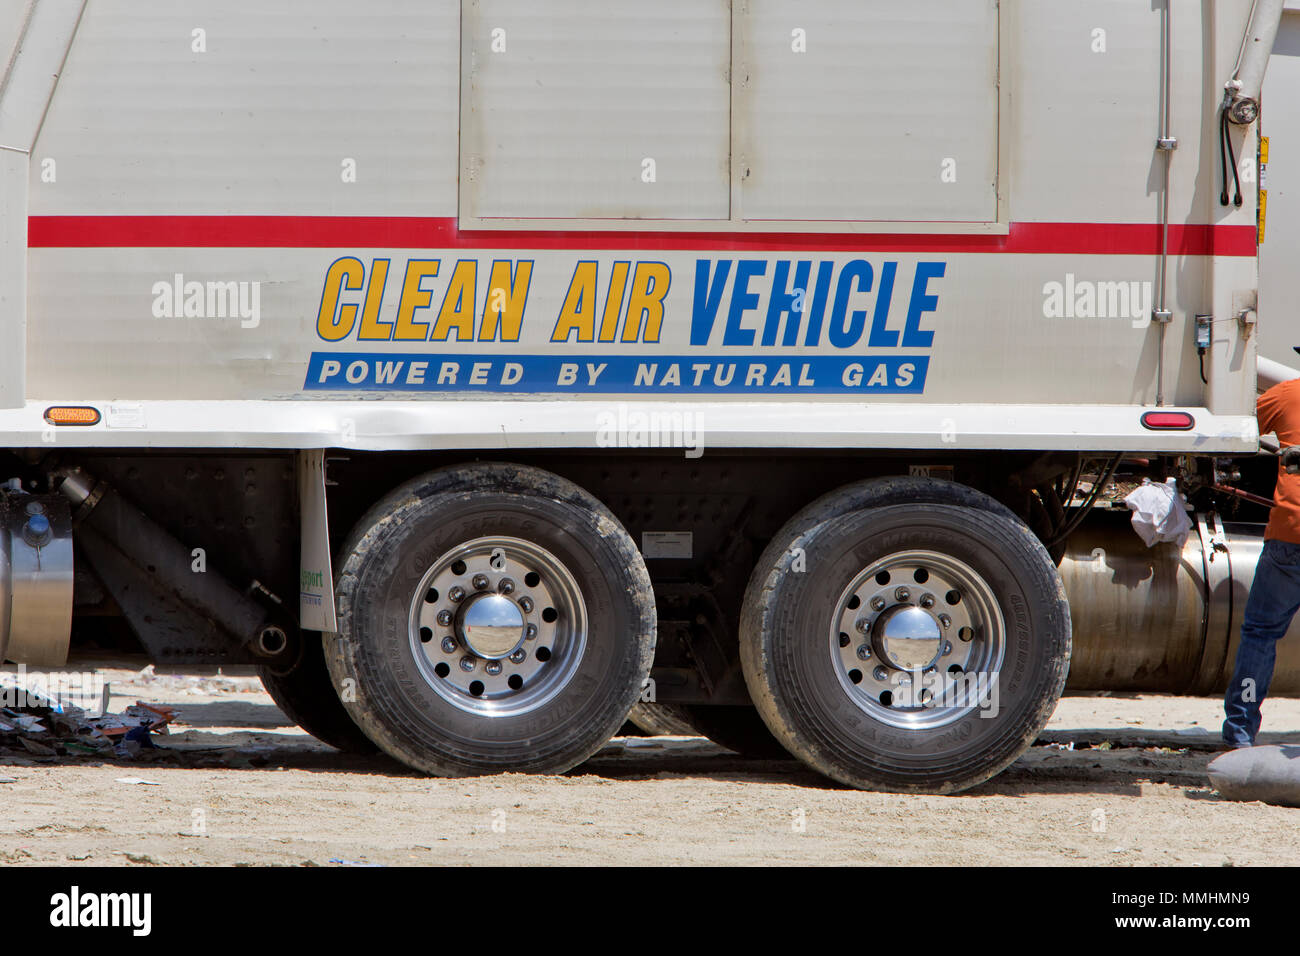 'Clean Air Vehicle' - 'Powered by Natural Gas', truck hauling garbage ato local Sanitary landfill. Stock Photo